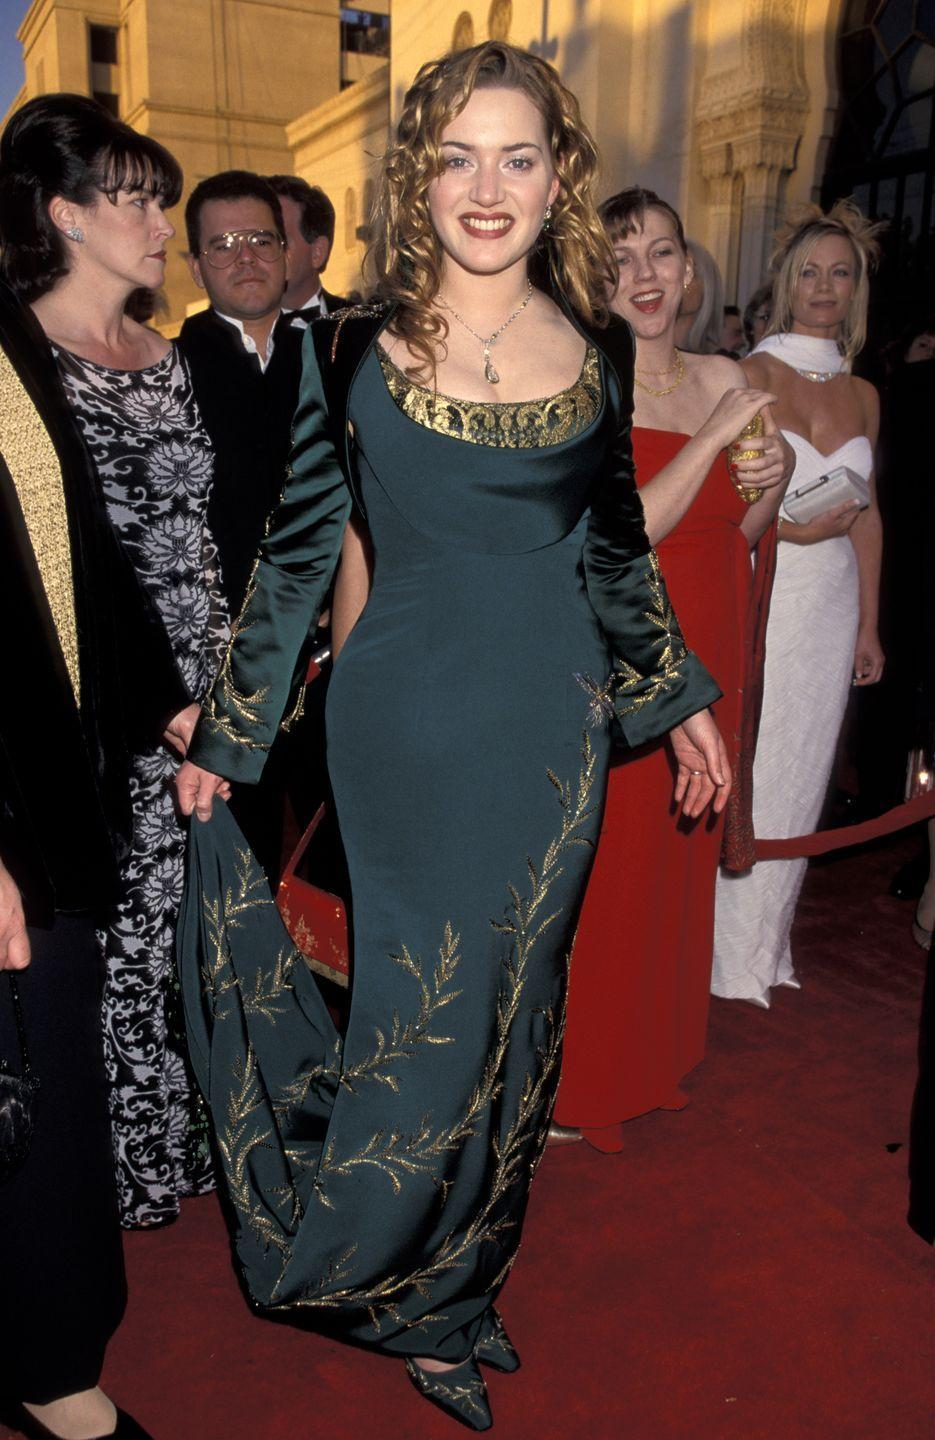 <p>At one glance, you might <em>think </em>Kate was on her way to the nearest Renaissance fair, but no, she was at the Academy Awards wearing this emerald-and-gold number. (This was also the year your fave movie <em>Titanic</em> took home the Oscar for Best Picture!) </p>